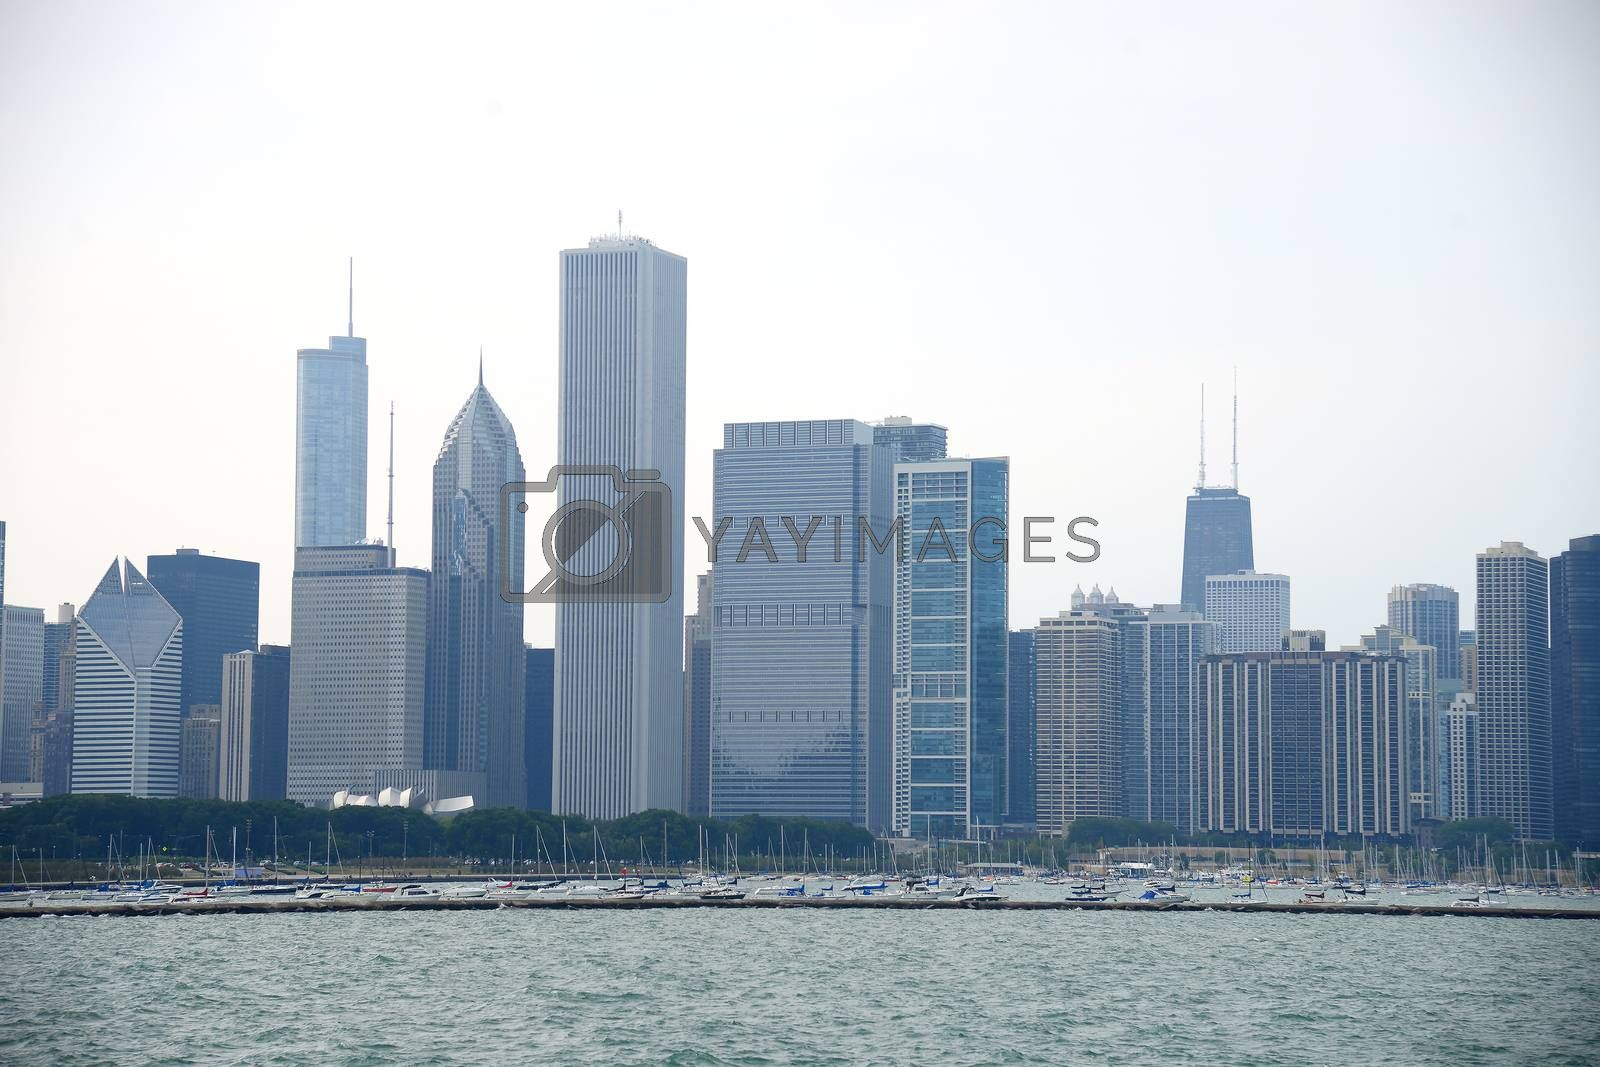 Royalty free image of chicago building by porbital